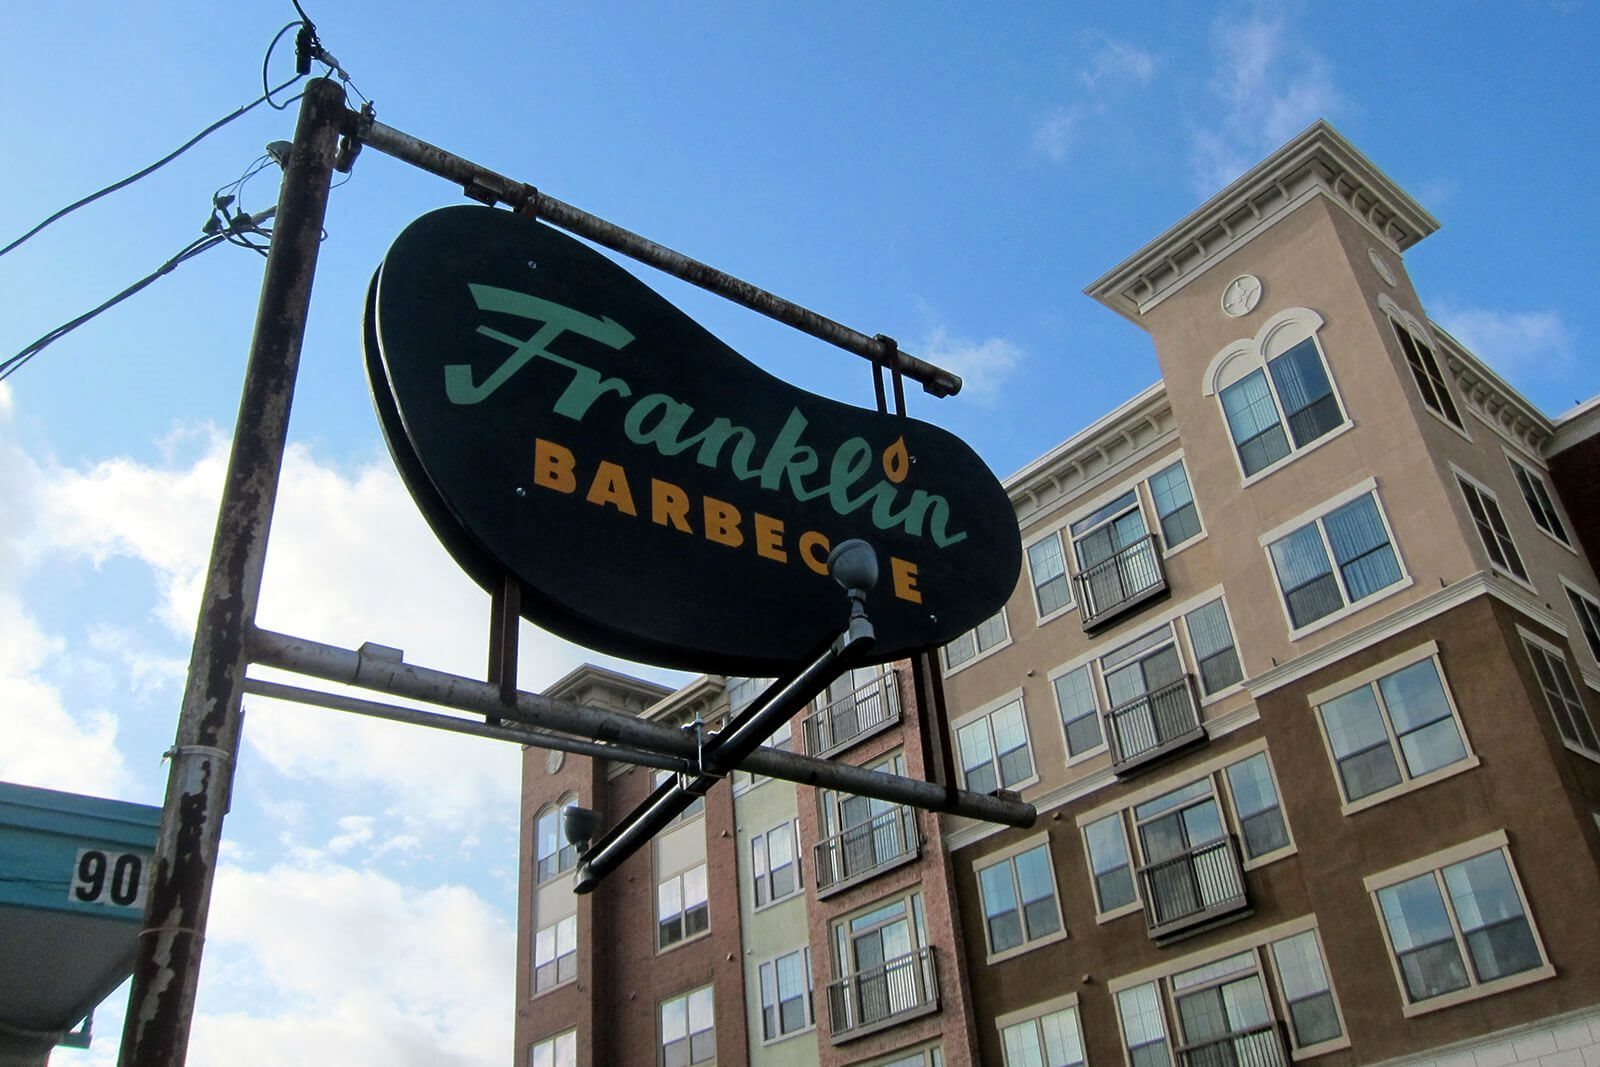 Franklin Barbecue near Windsor South Lamar, Texas, 78704